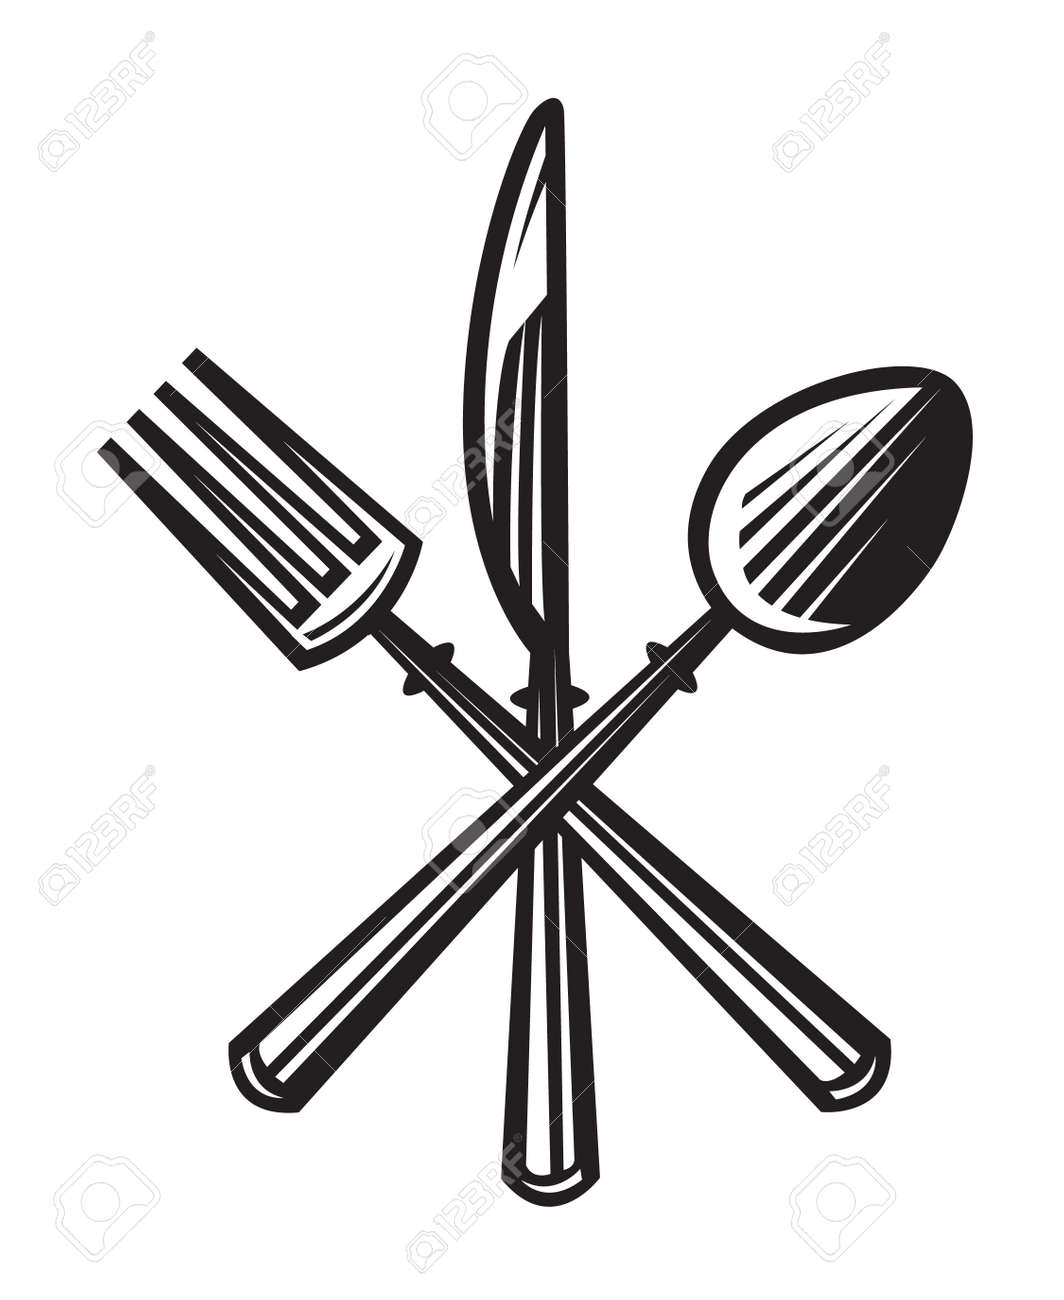 monochrome illustrations set of knife, fork and spoon - 43889181